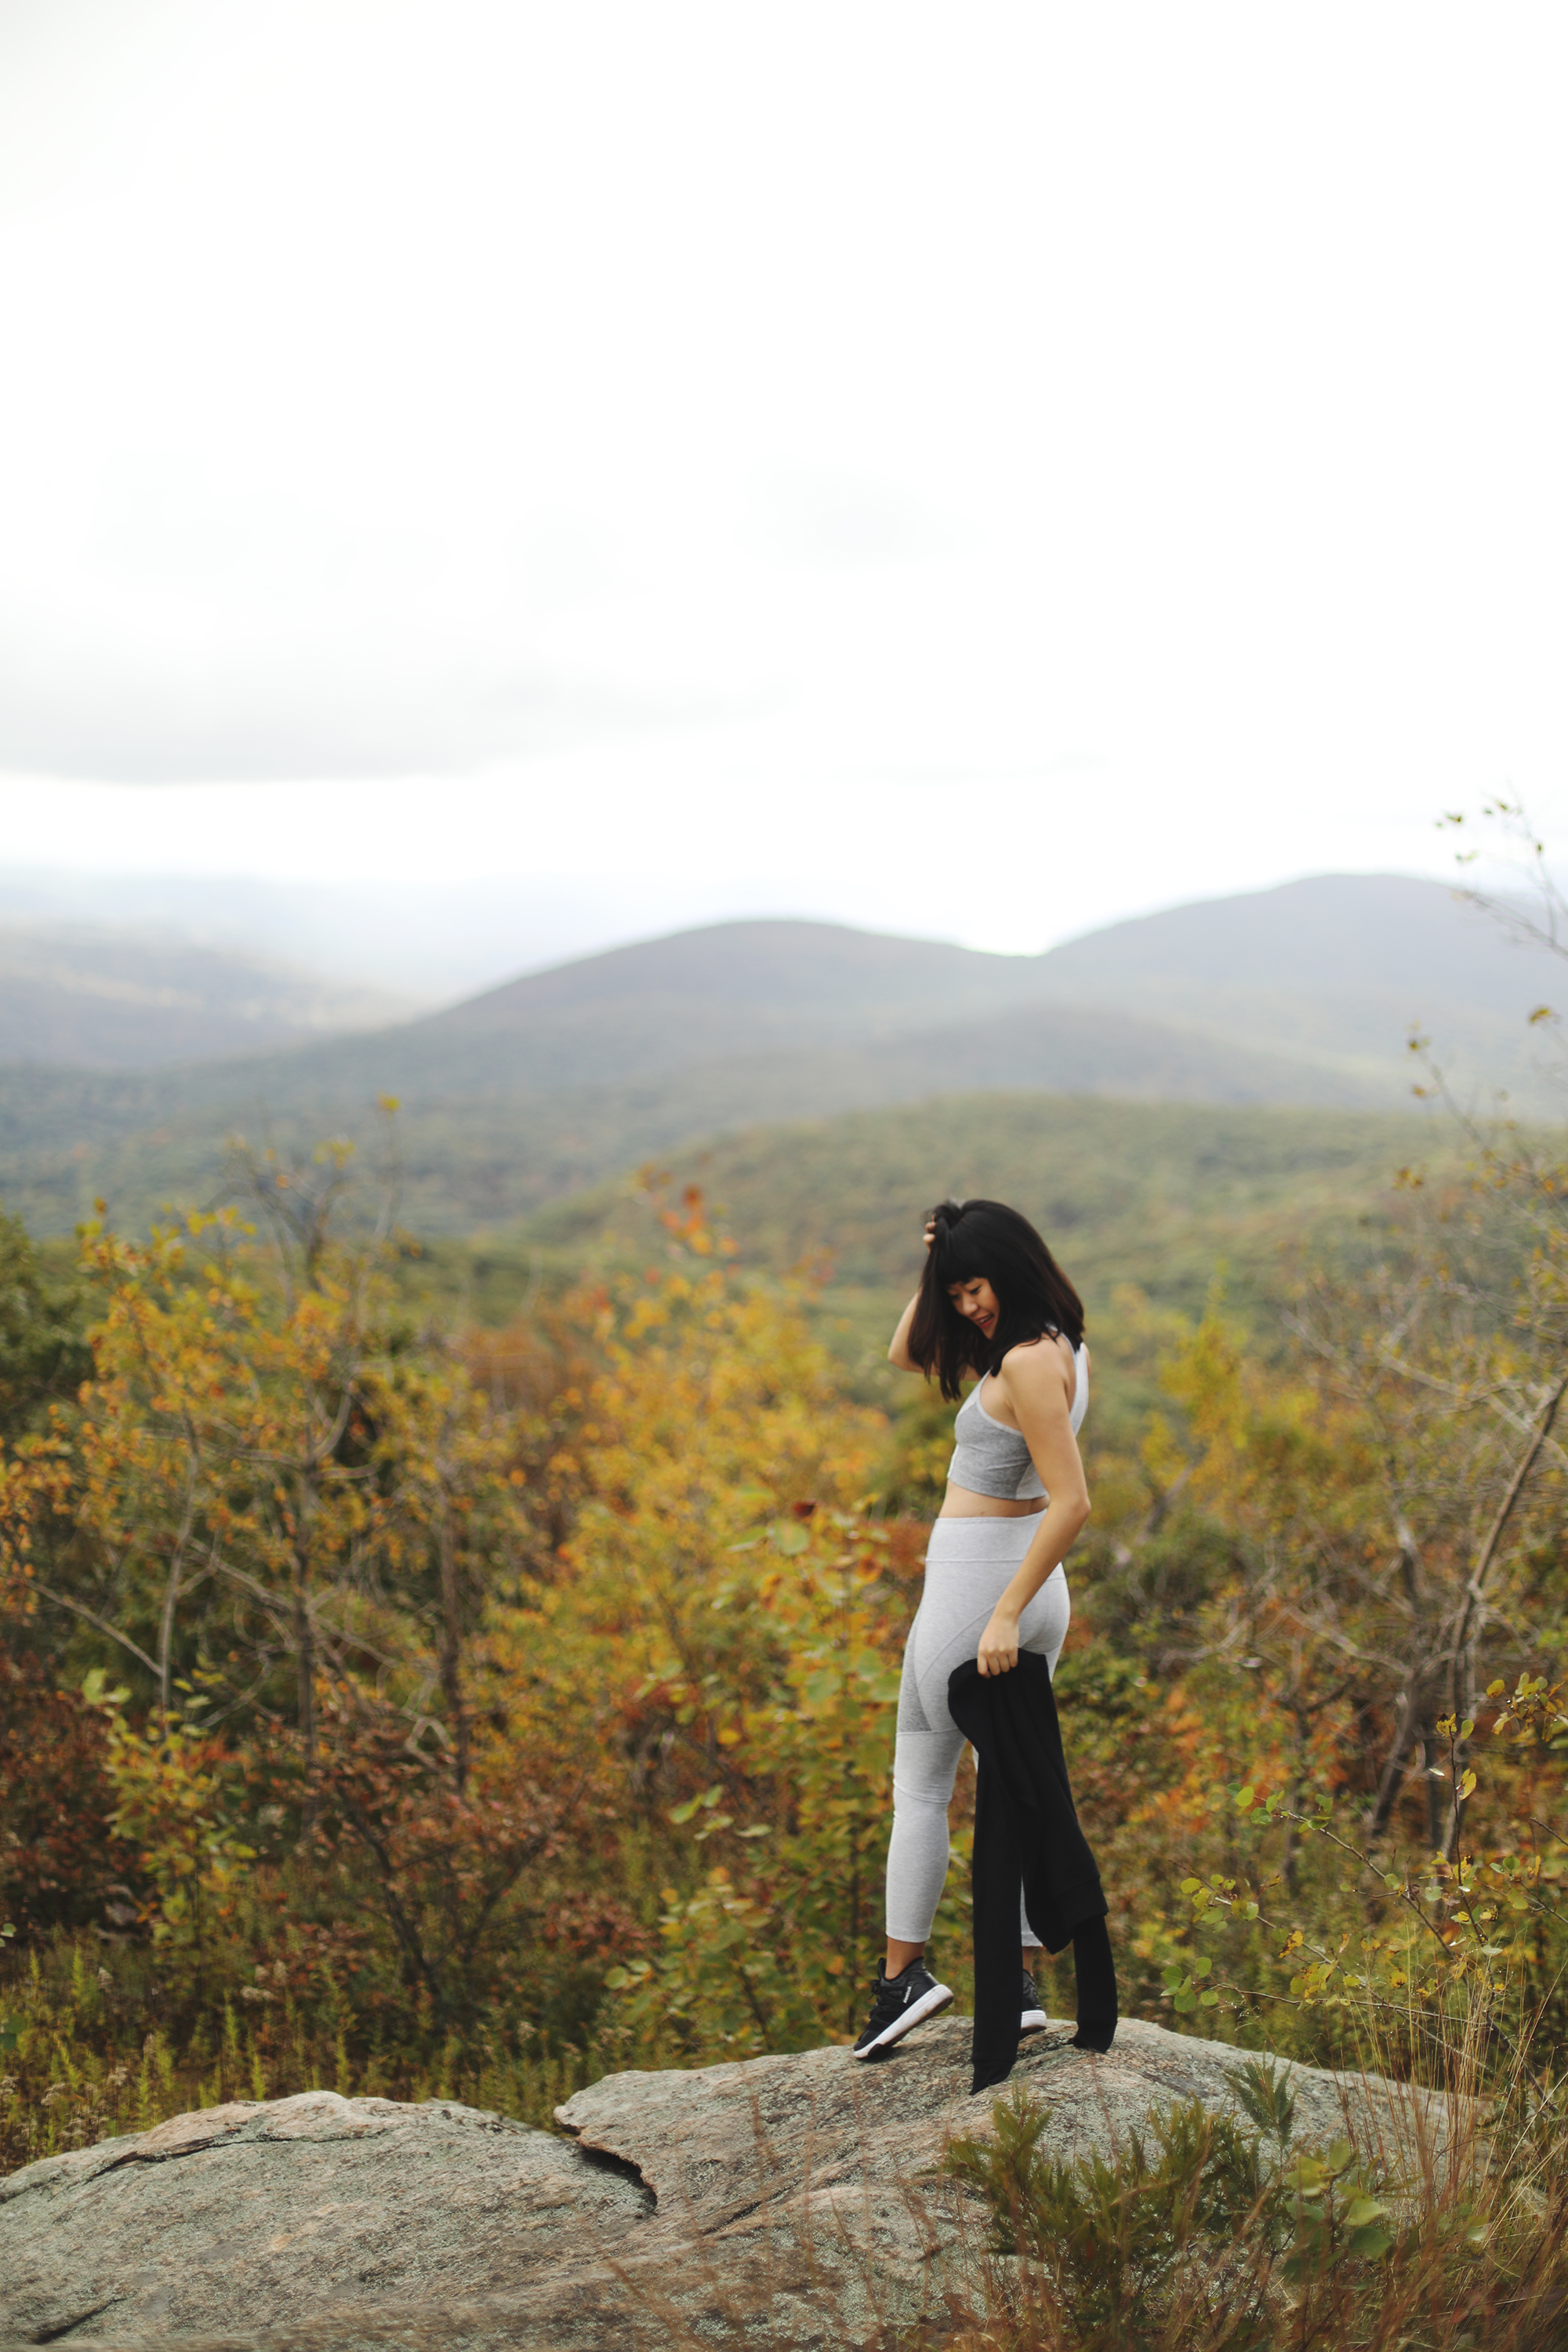 Second Saturdays in Beacon, New York | Hiking Mount Beacon - Fire Tower | #Travel